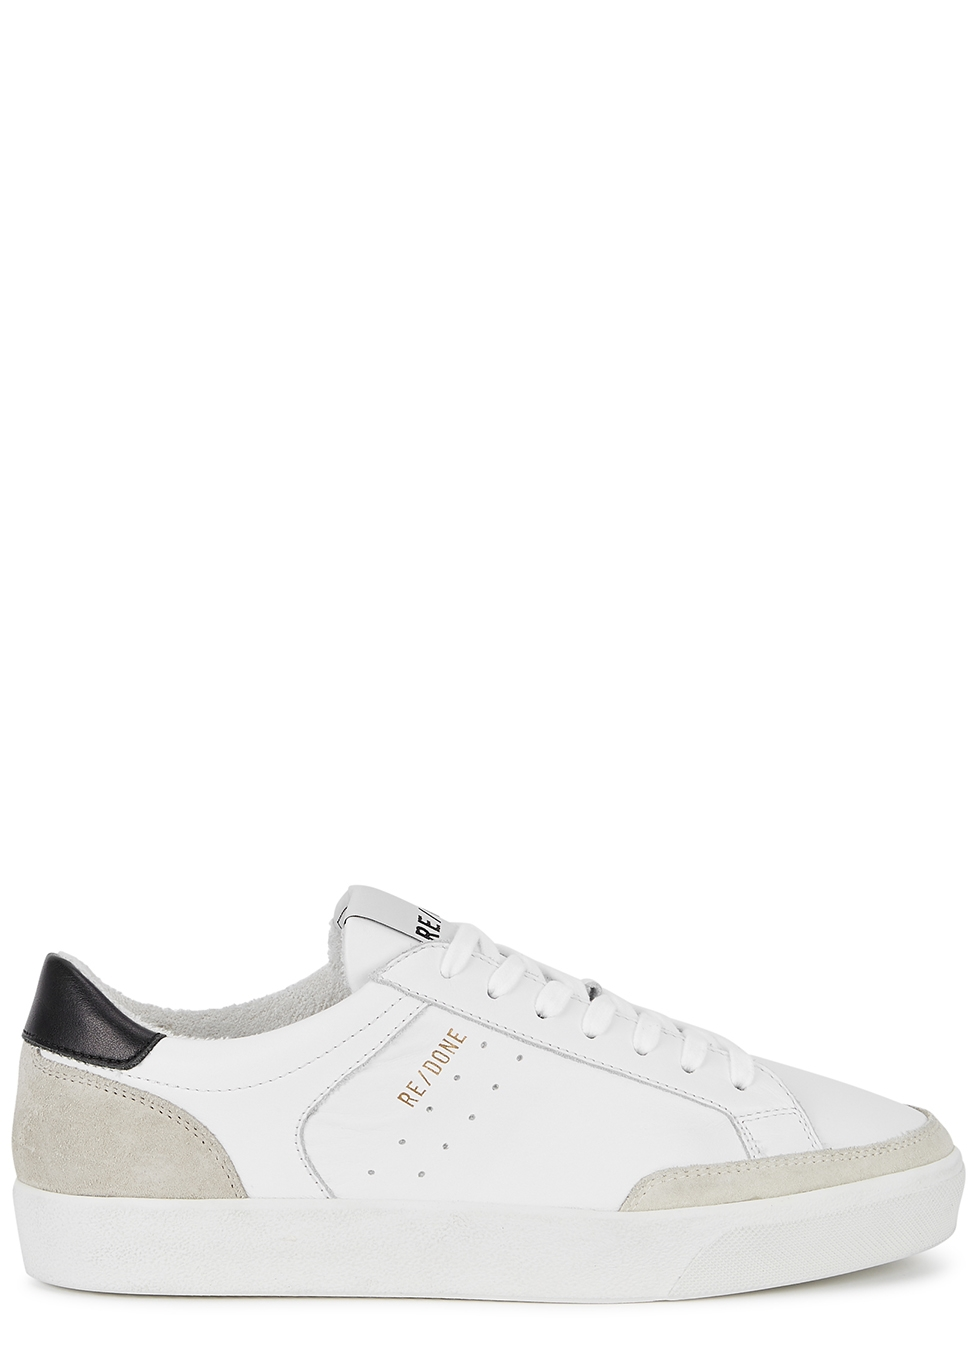 90s Skate white leather sneakers